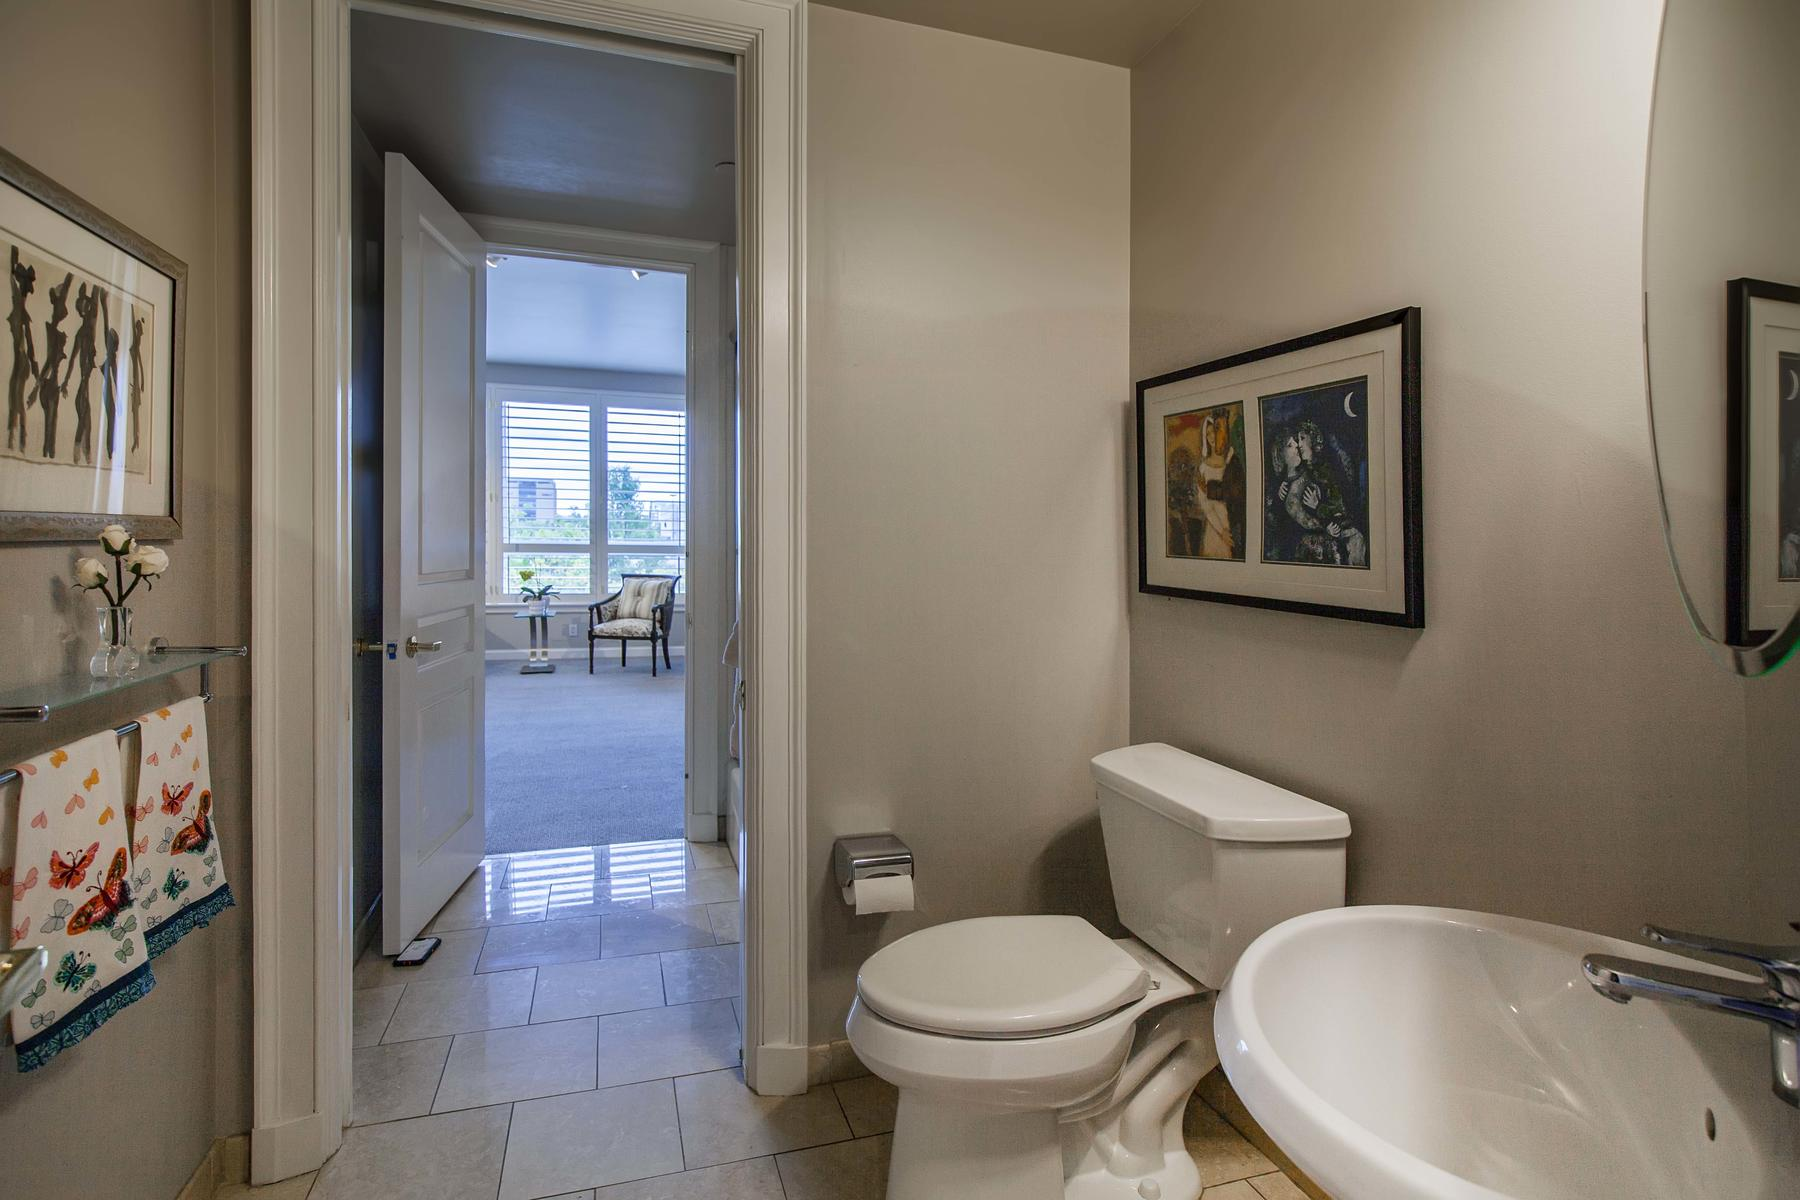 2400 Cherry Creek S Drive 209-037-015-Bathroom-MLS_Size.jpg